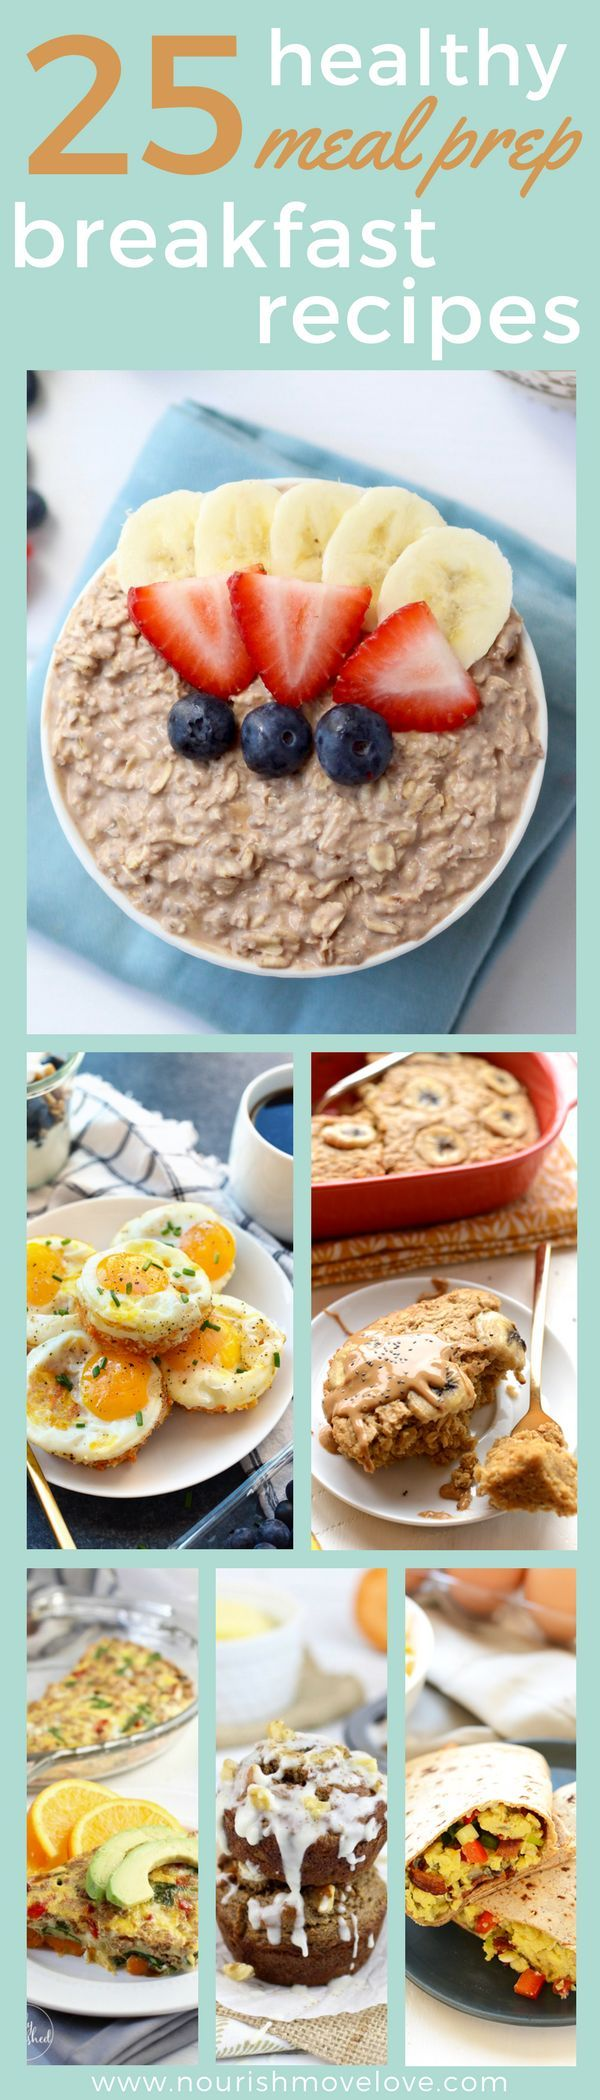 25 healthy meal prep breakfast recipes. Clean eating, simple recipes, easy ingredients to get your morning off right. Grab and go options that you can prep on the weekend | http://www.nourishmovelove.com